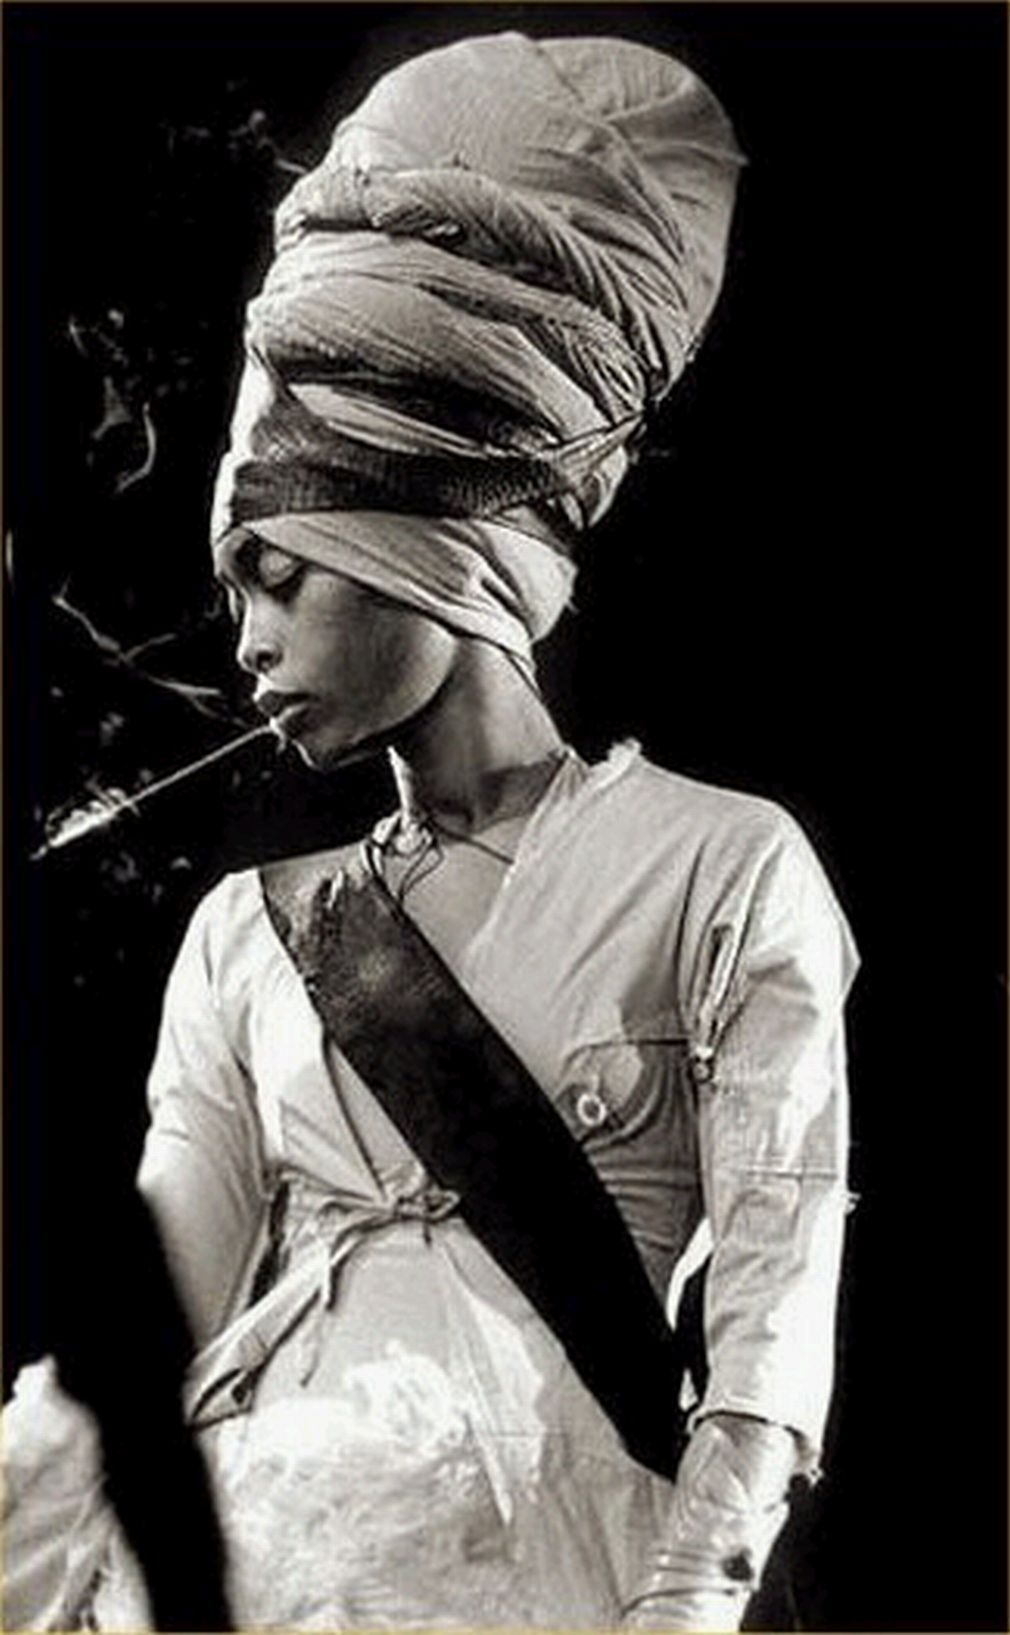 "Erica Abi Wright (born February 26, 1971), better known by her stage name Erykah Badu, is a Grammy Award-winning American singer-songwriter, record producer, activist and actress. Her work includes elements from R, hip hop and jazz. She is best known for her role in the rise of the neo soul sub-genre, and for her eccentric, cerebral musical stylings and sense of fashion. She is known as the ""First Lady of Neo-Soul"" or the ""Queen of Neo-Soul""."